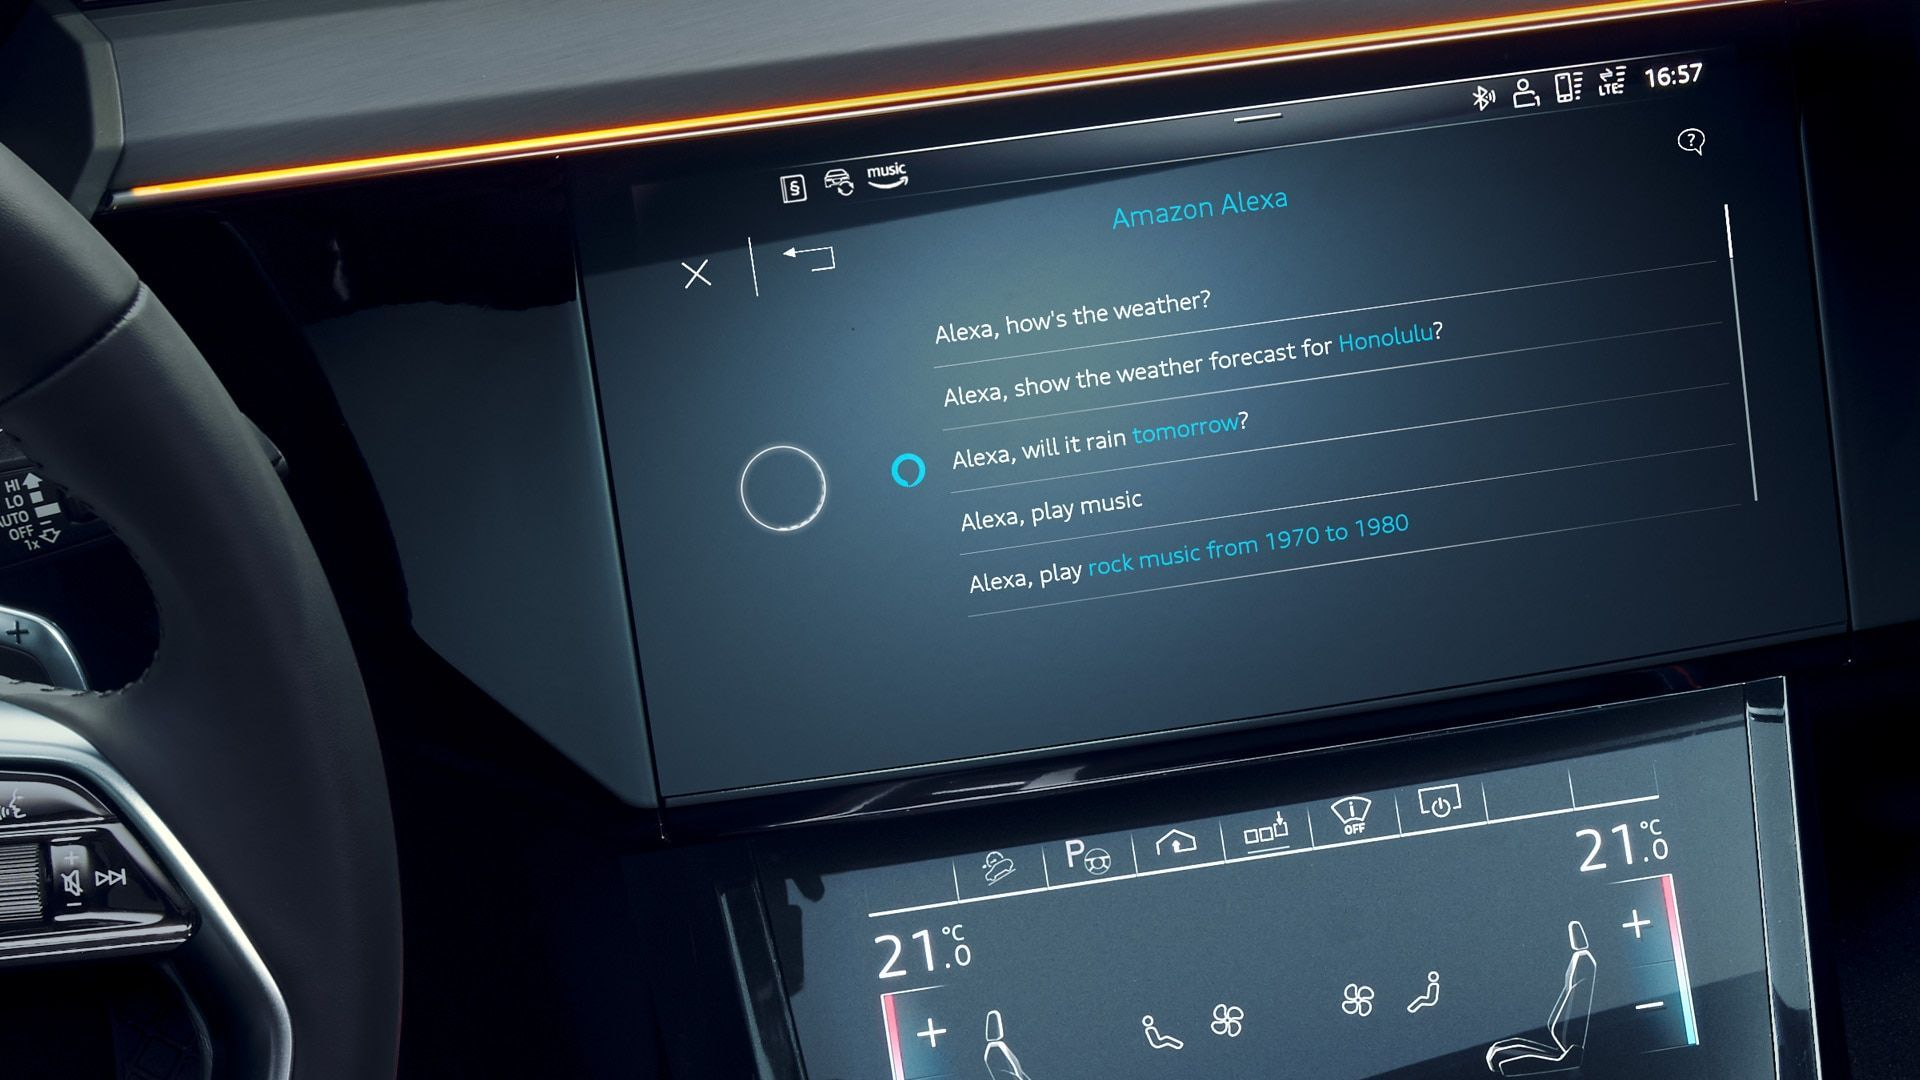 The Audi e-tron infotainment screen with Amazon Alexa voice assistant activated.